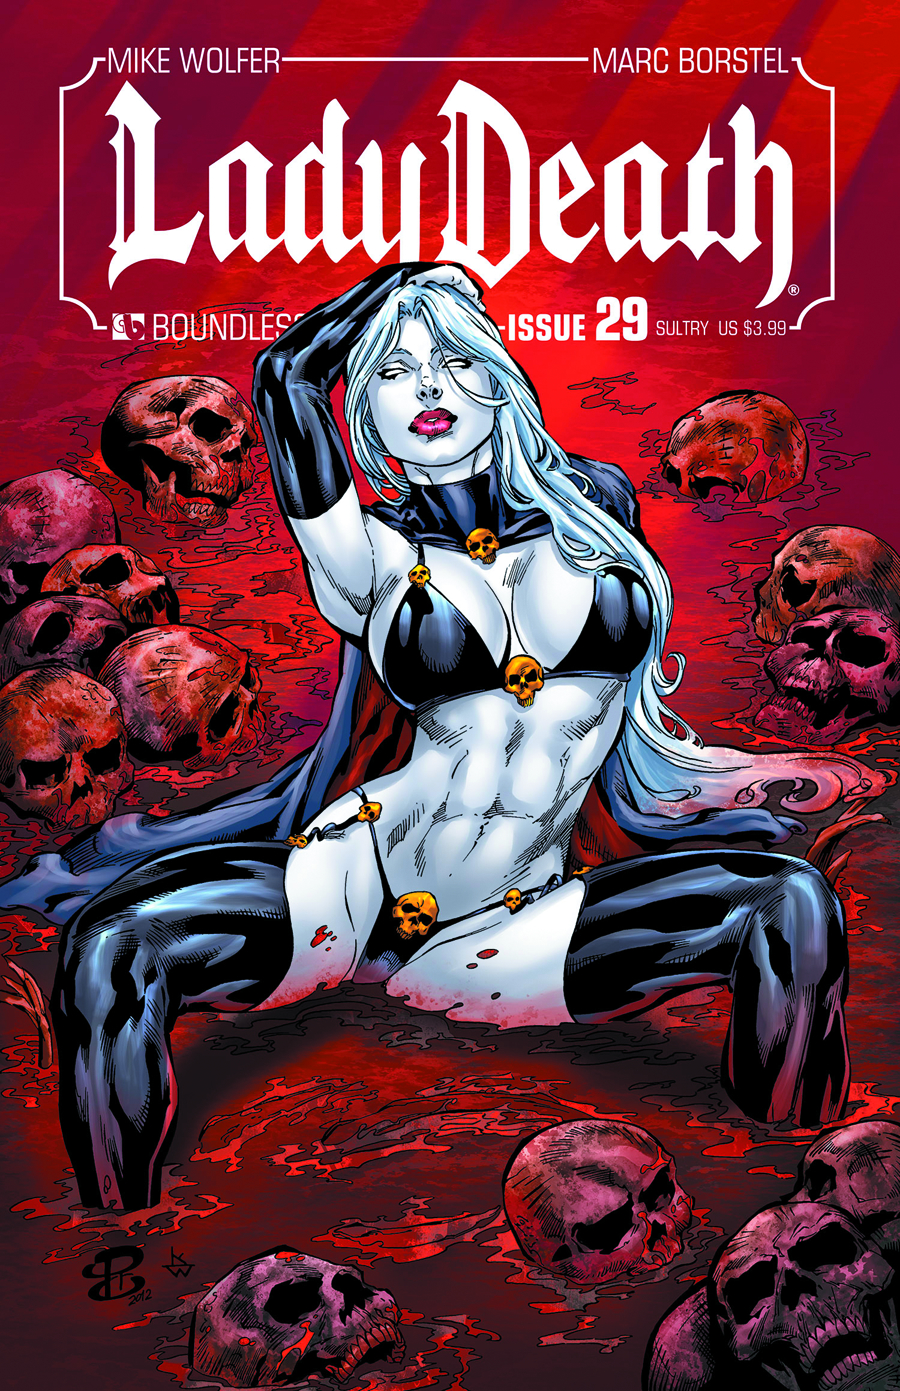 LADY DEATH (ONGOING) #29 SULTRY CVR